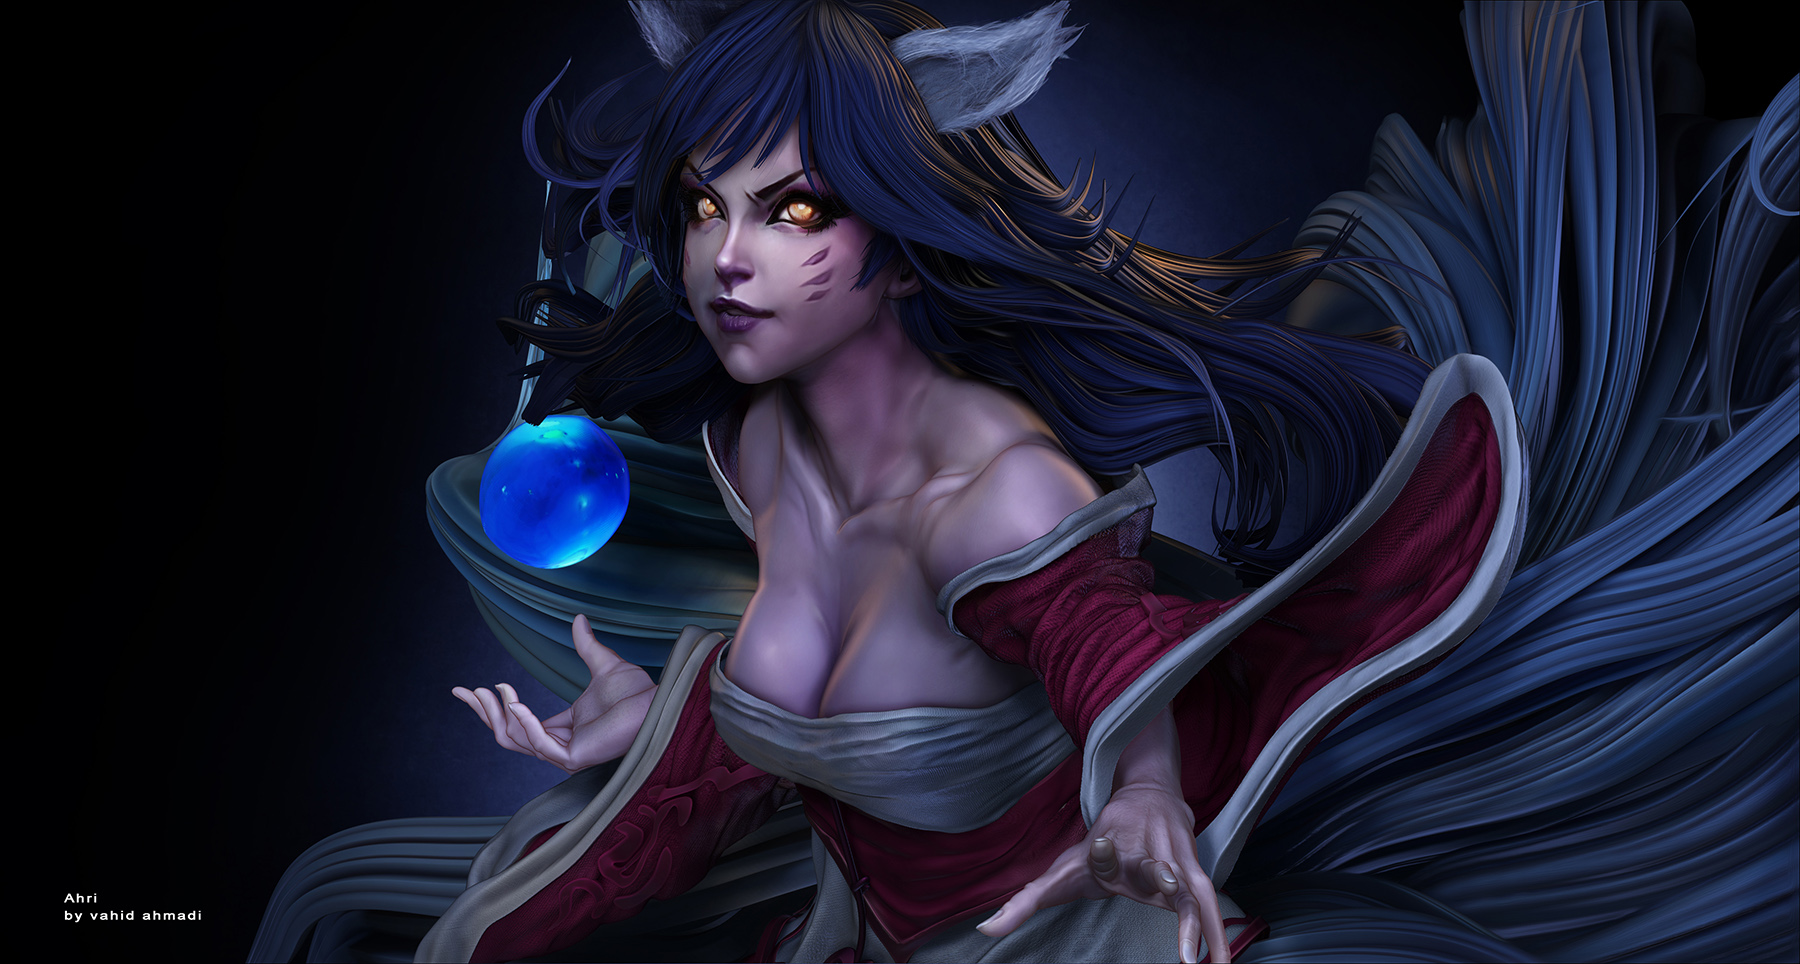 ahri league of legends  by vahid ahmadi ver3-009v.jpg